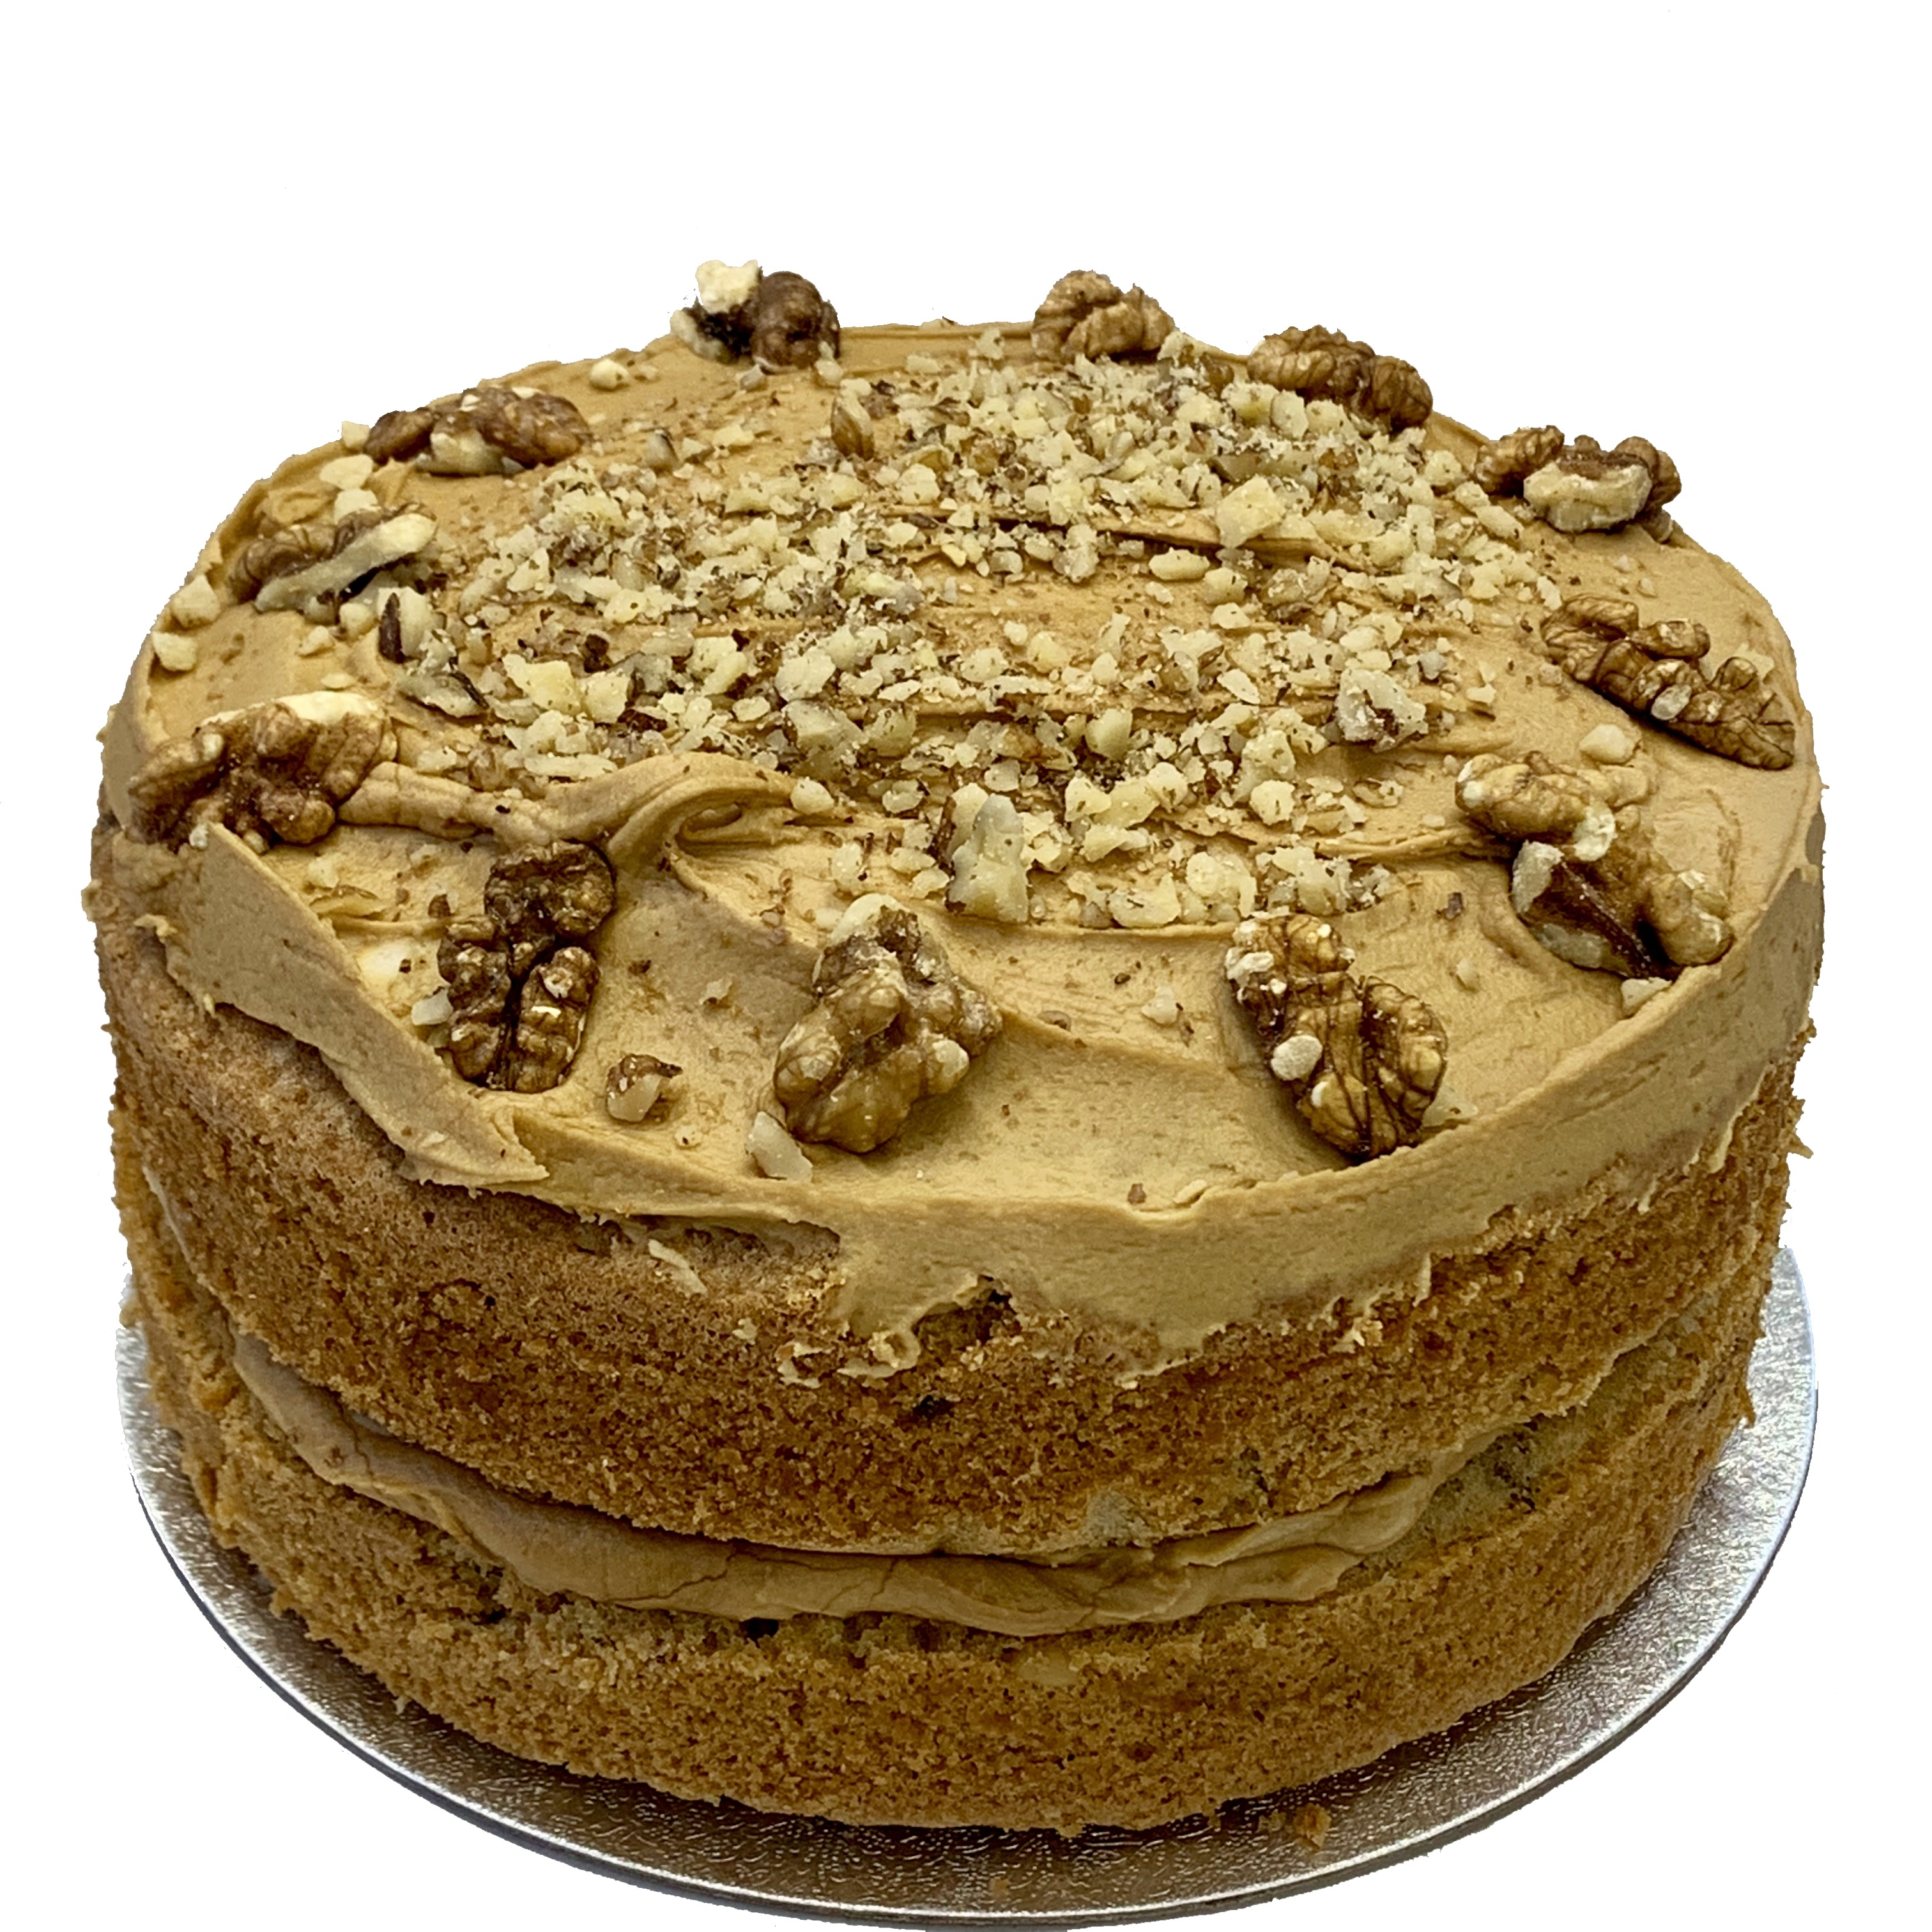 Cakes - Coffee & Walnut